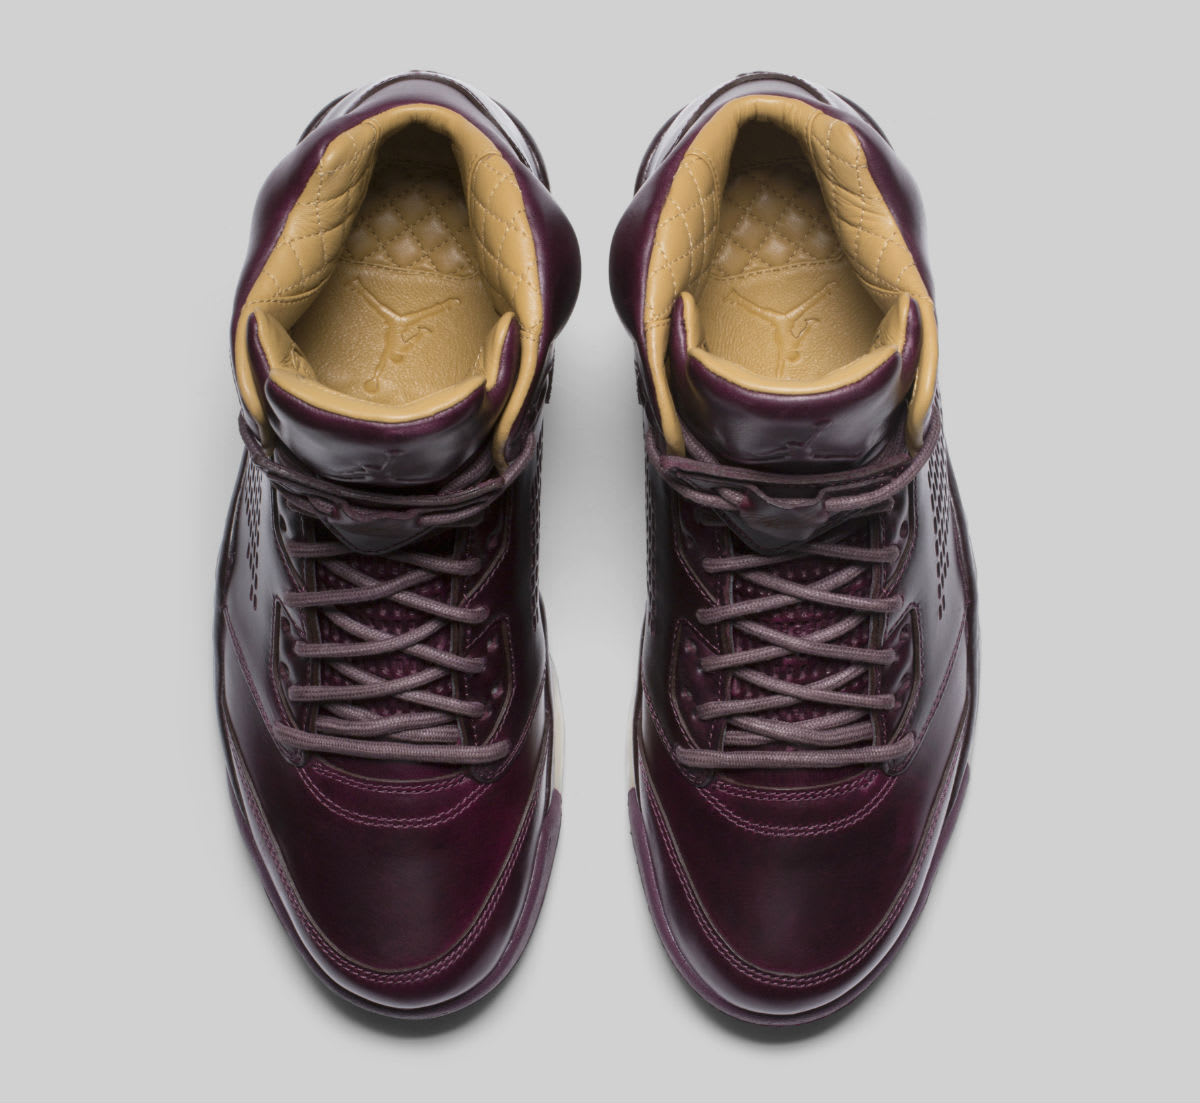 Air Jordan 5 Premium Bordeaux Release Date Top 881432-612